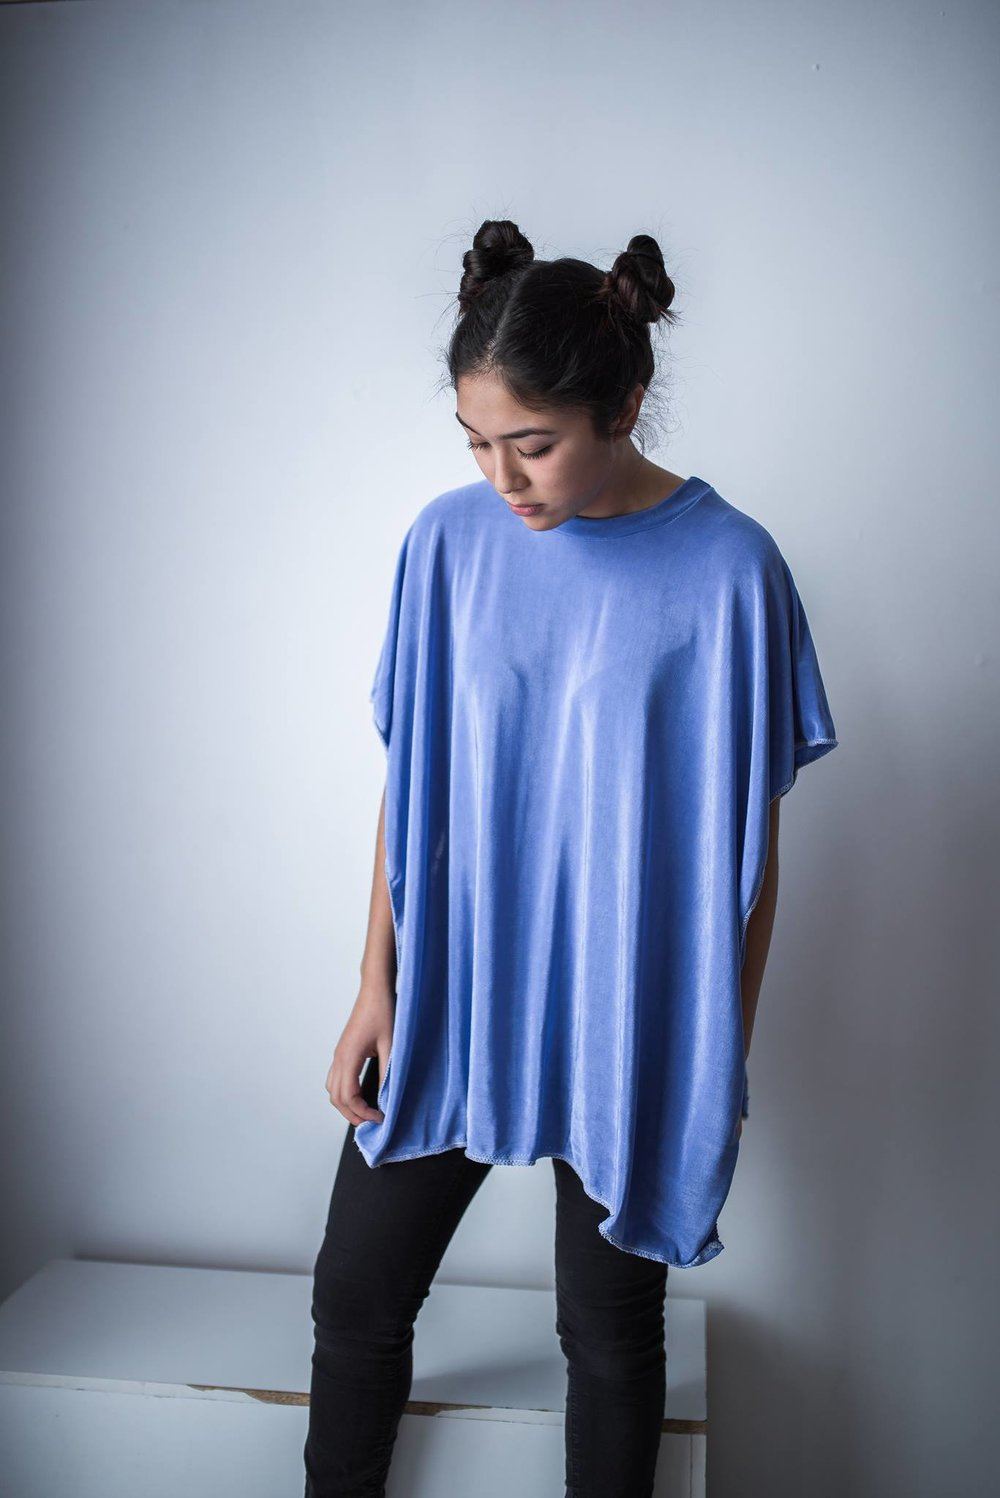 Poncho - the garment to wear when you can't decide if you want to wear a tank top or a t-shirt.